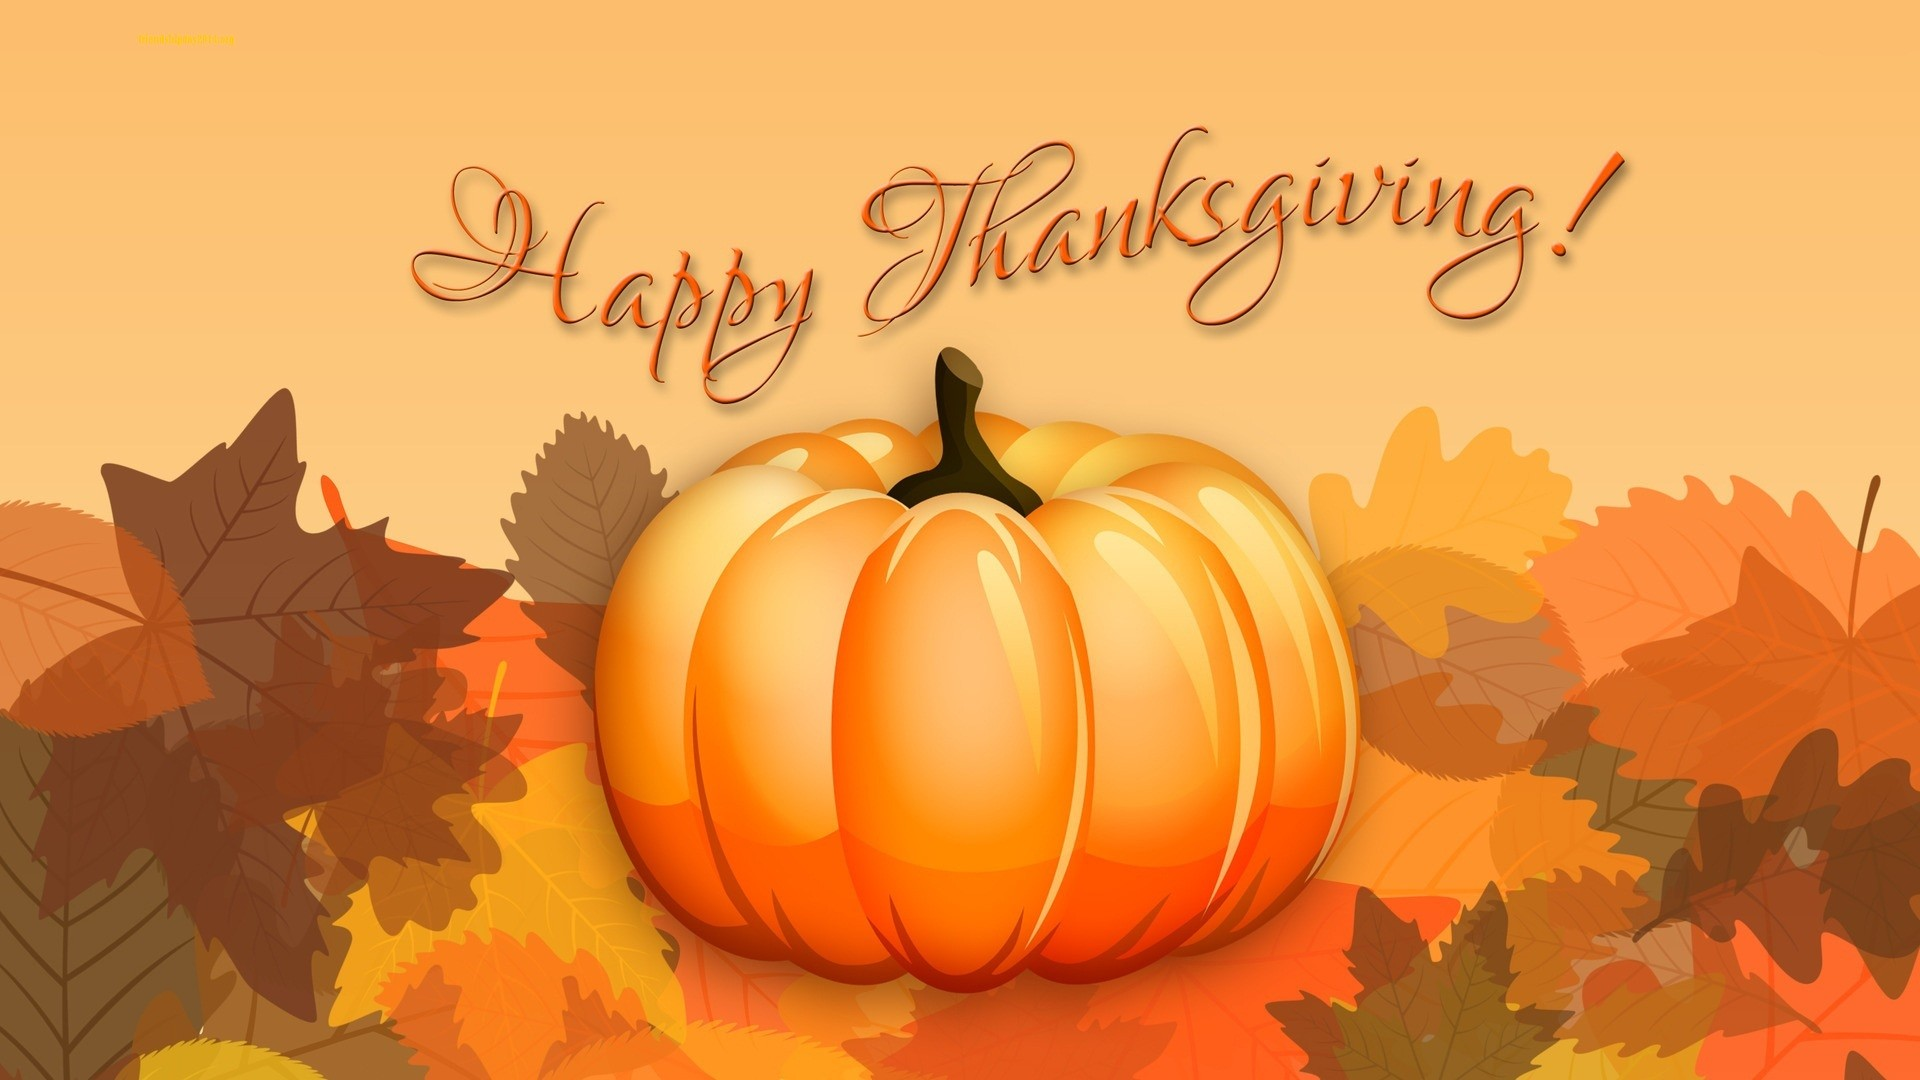 happy thanksgiving holiday wallpaper 65955